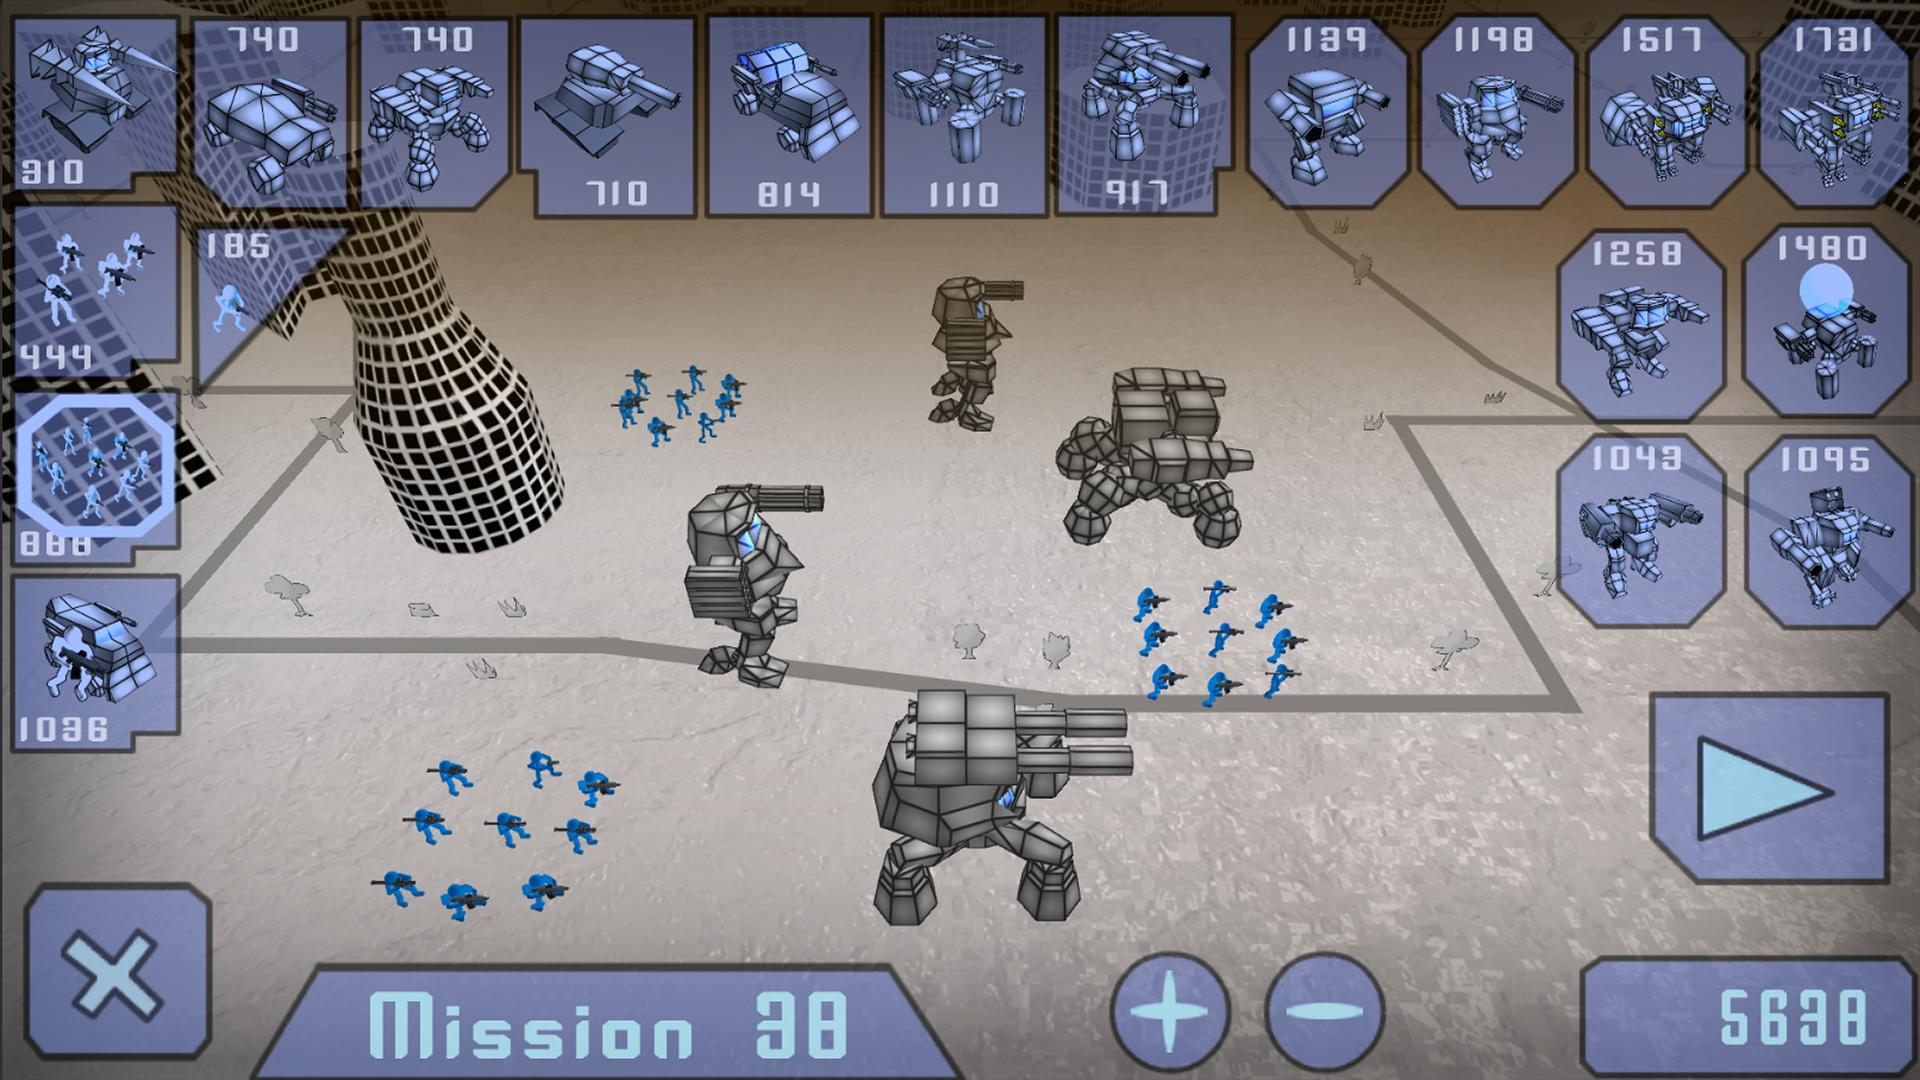 Stickman Mech Battle Simulator for Android - APK Download